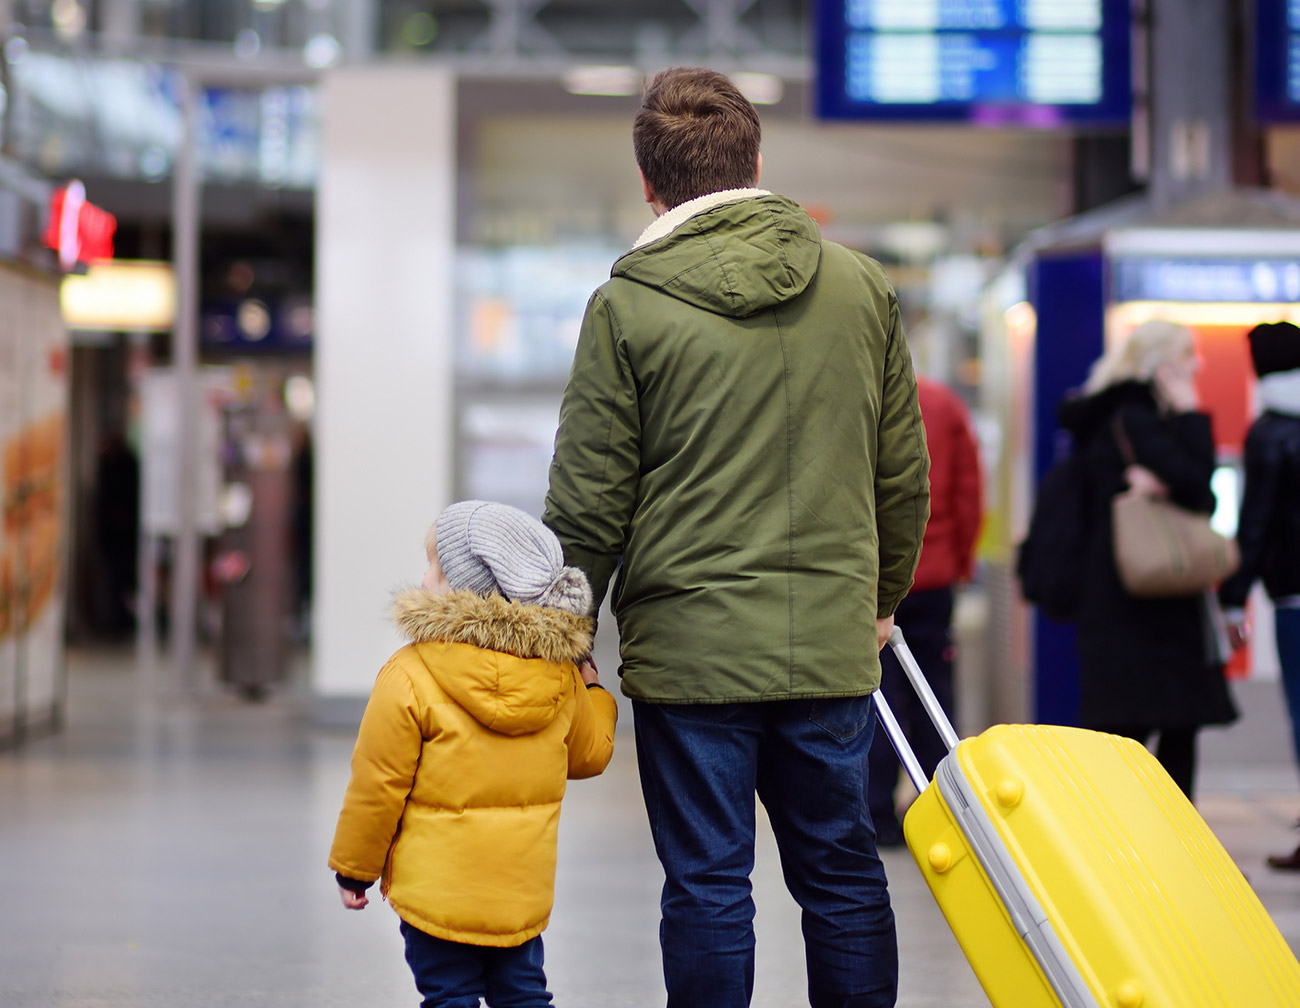 Father and son at airport looking at delayed flights